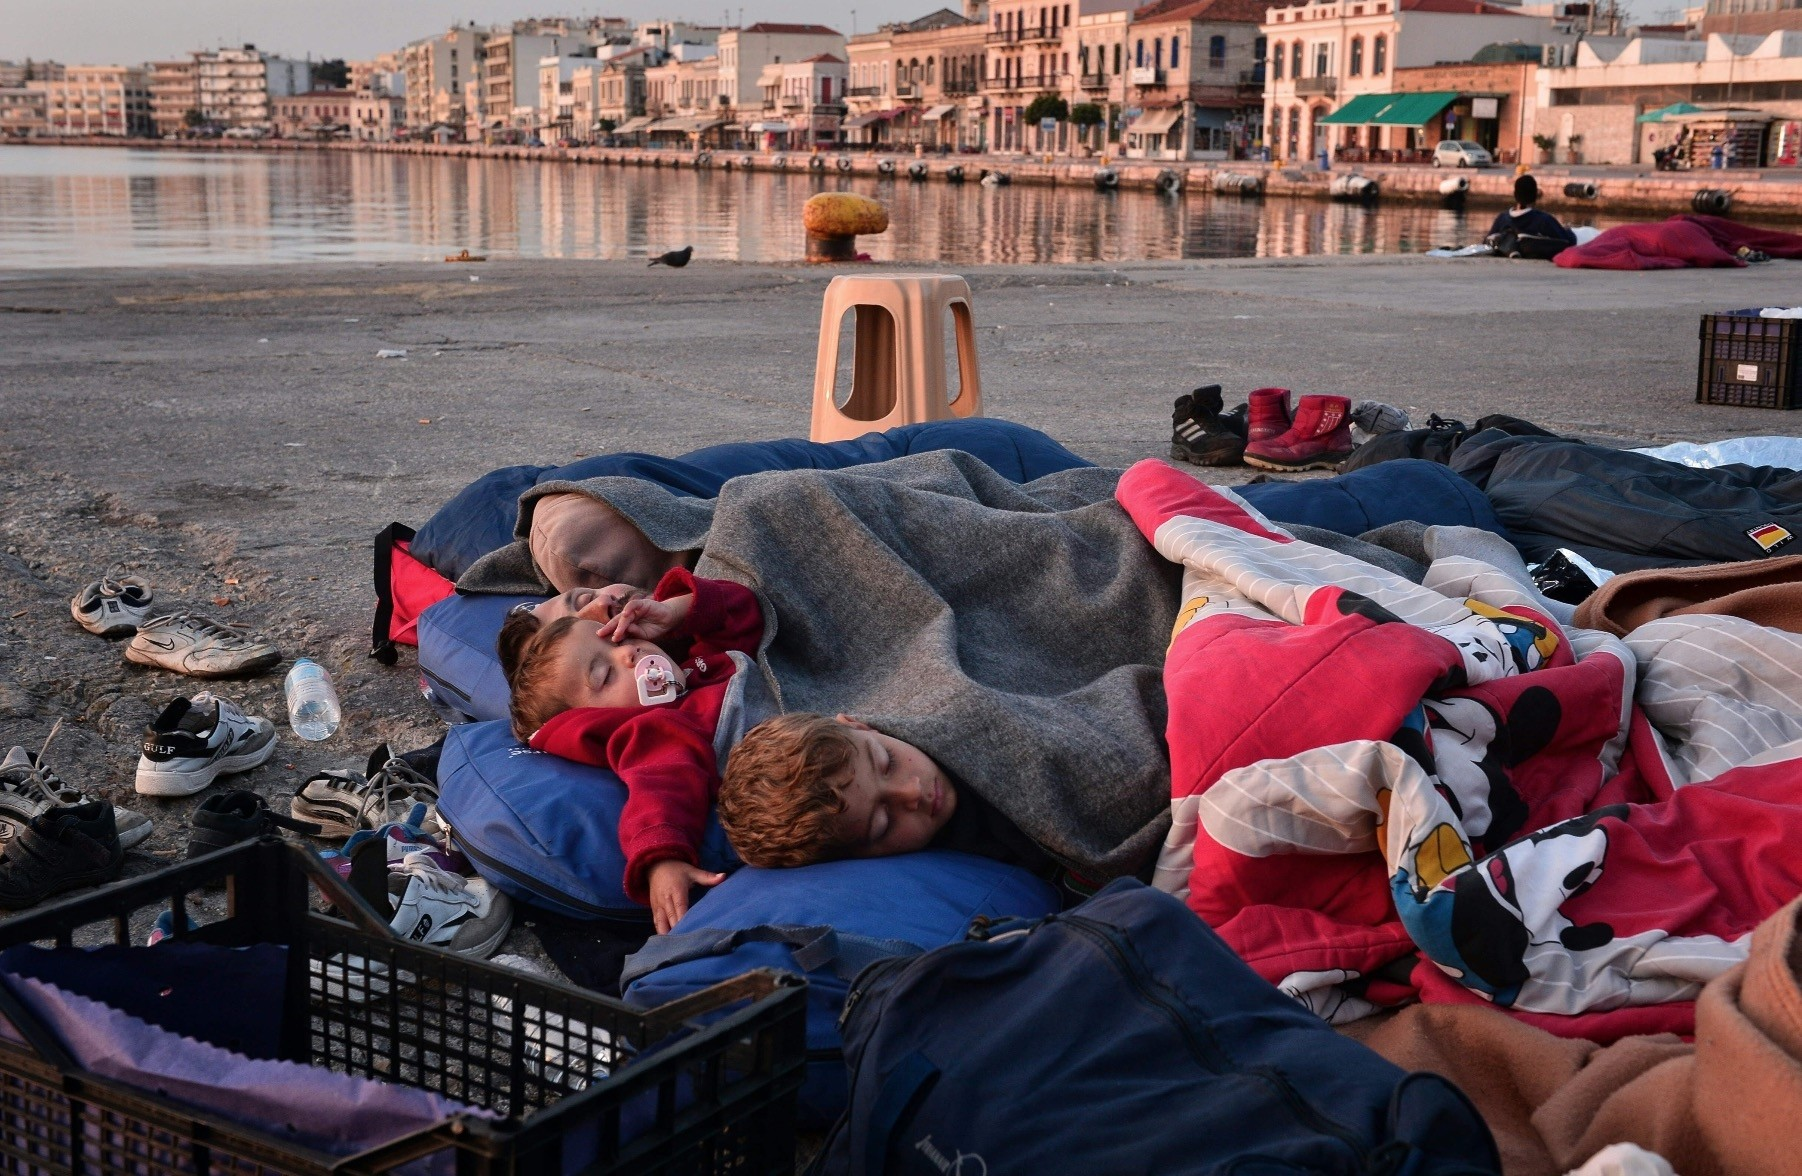 Children sleep at the Port of Chios, Greece, April 5, 2016